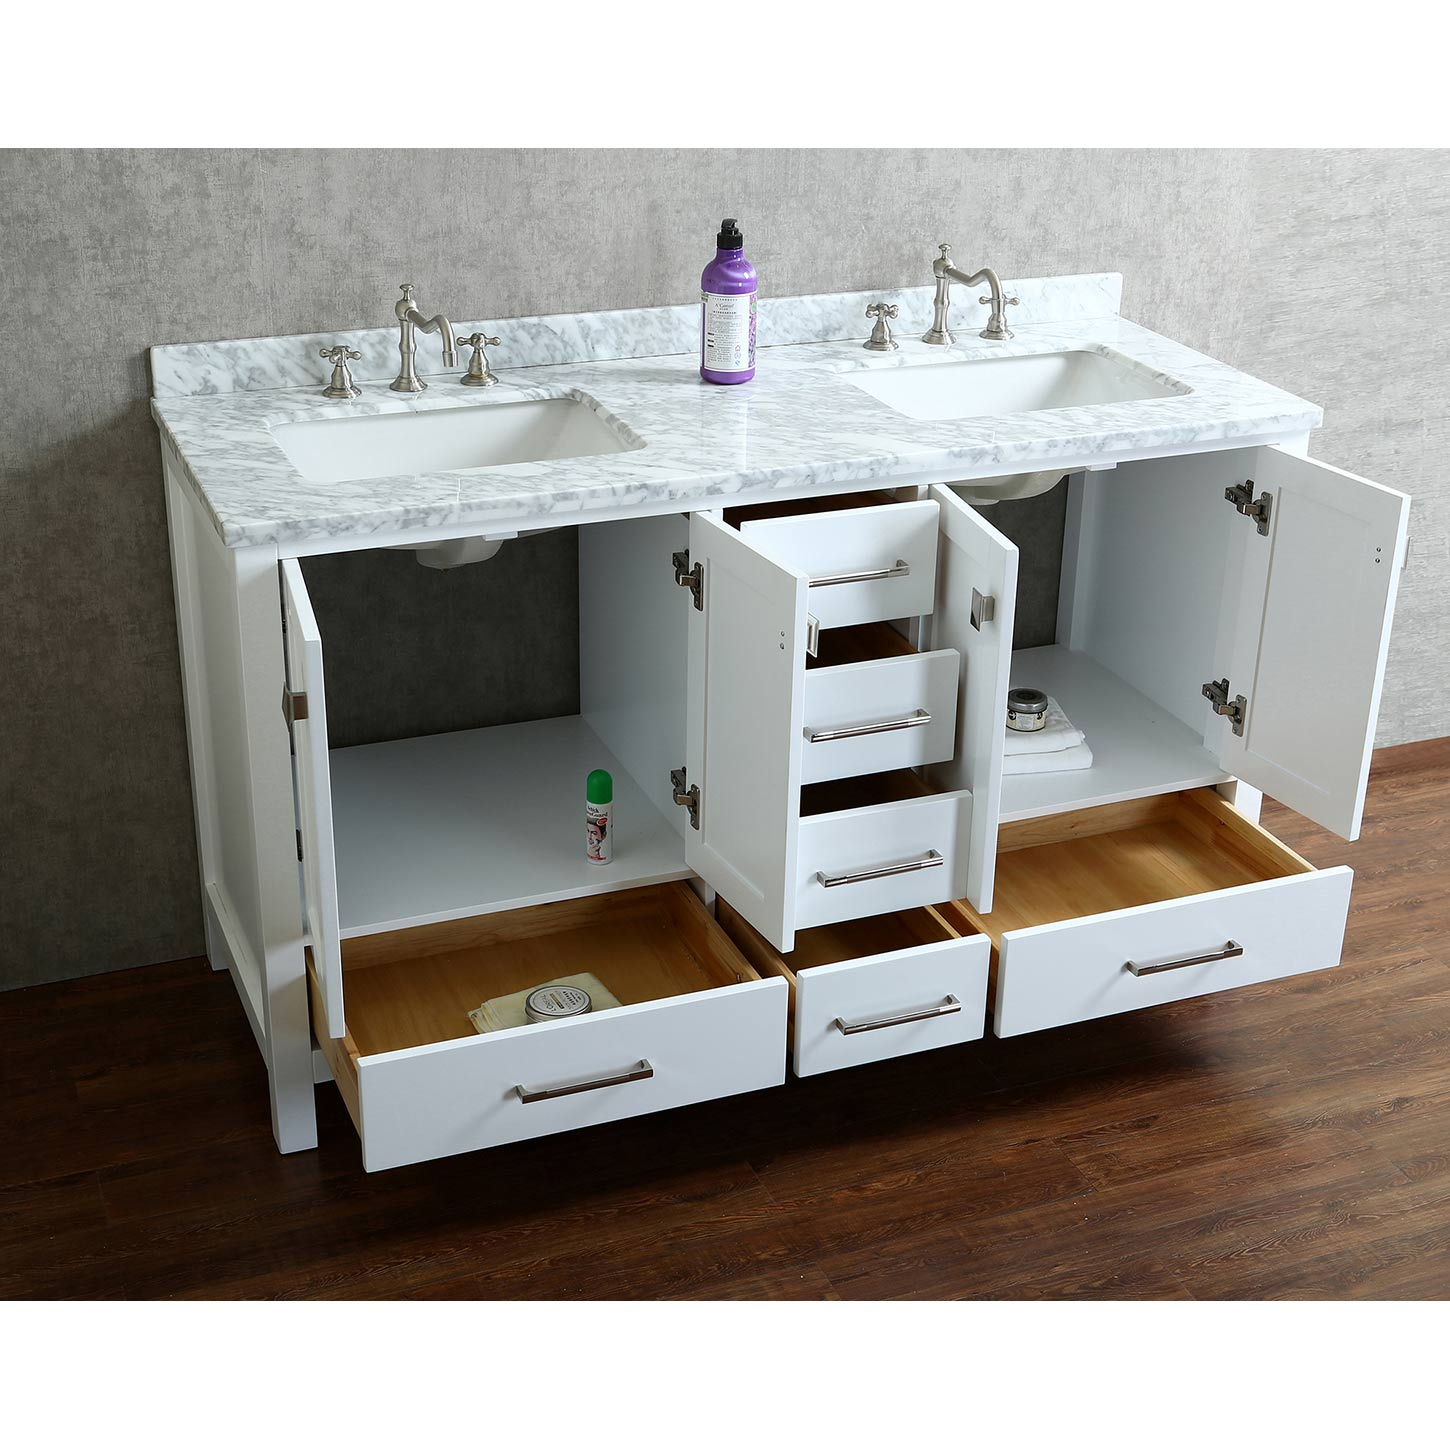 Vincent 60 Solid Wood Double Bathroom Vanity In White Hm 13001 Wmsq Wt